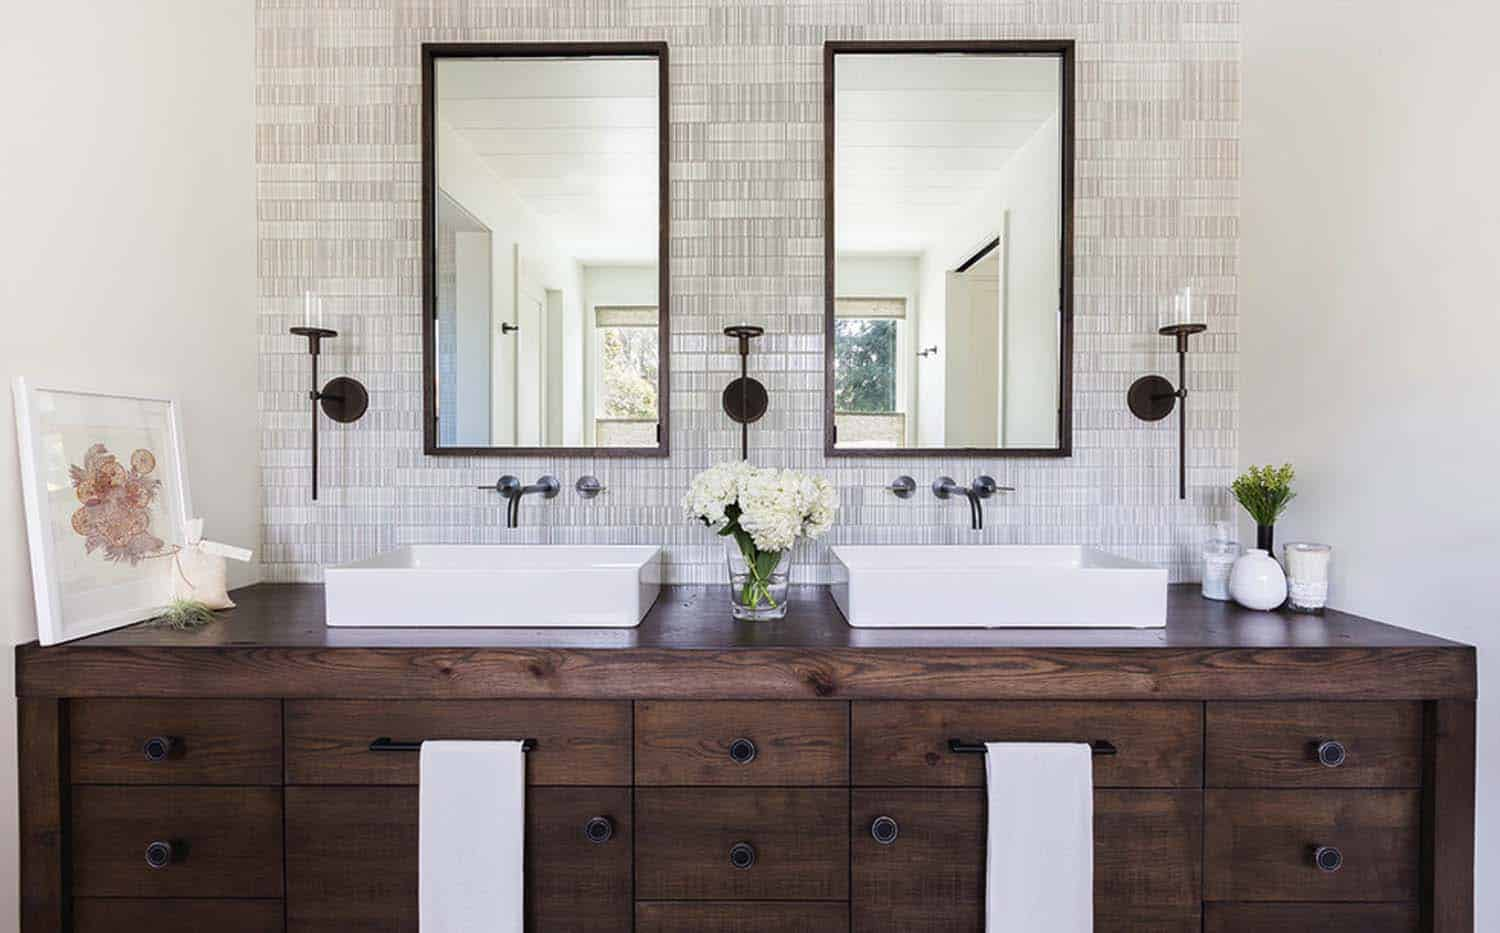 Farmhouse Sink Melbourne Modern Farmhouse Style With Timeless Interiors In Northern